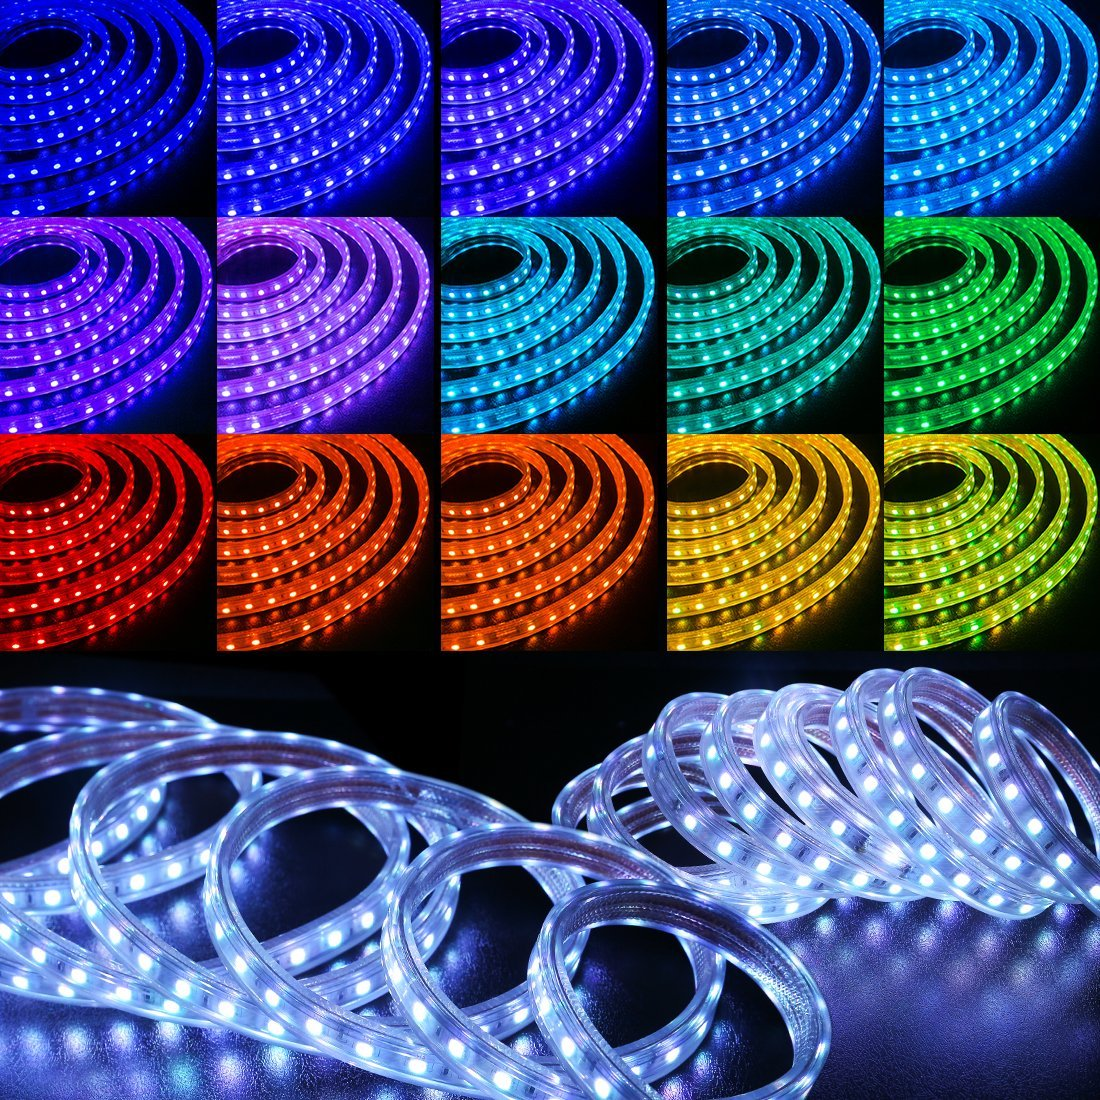 WYZworks SMD 5050 16 Colors LED Flexible Dimming Light Rope Strip Remote Controlled/IR Receiver - 100 Feet by WYZworks (Image #1)